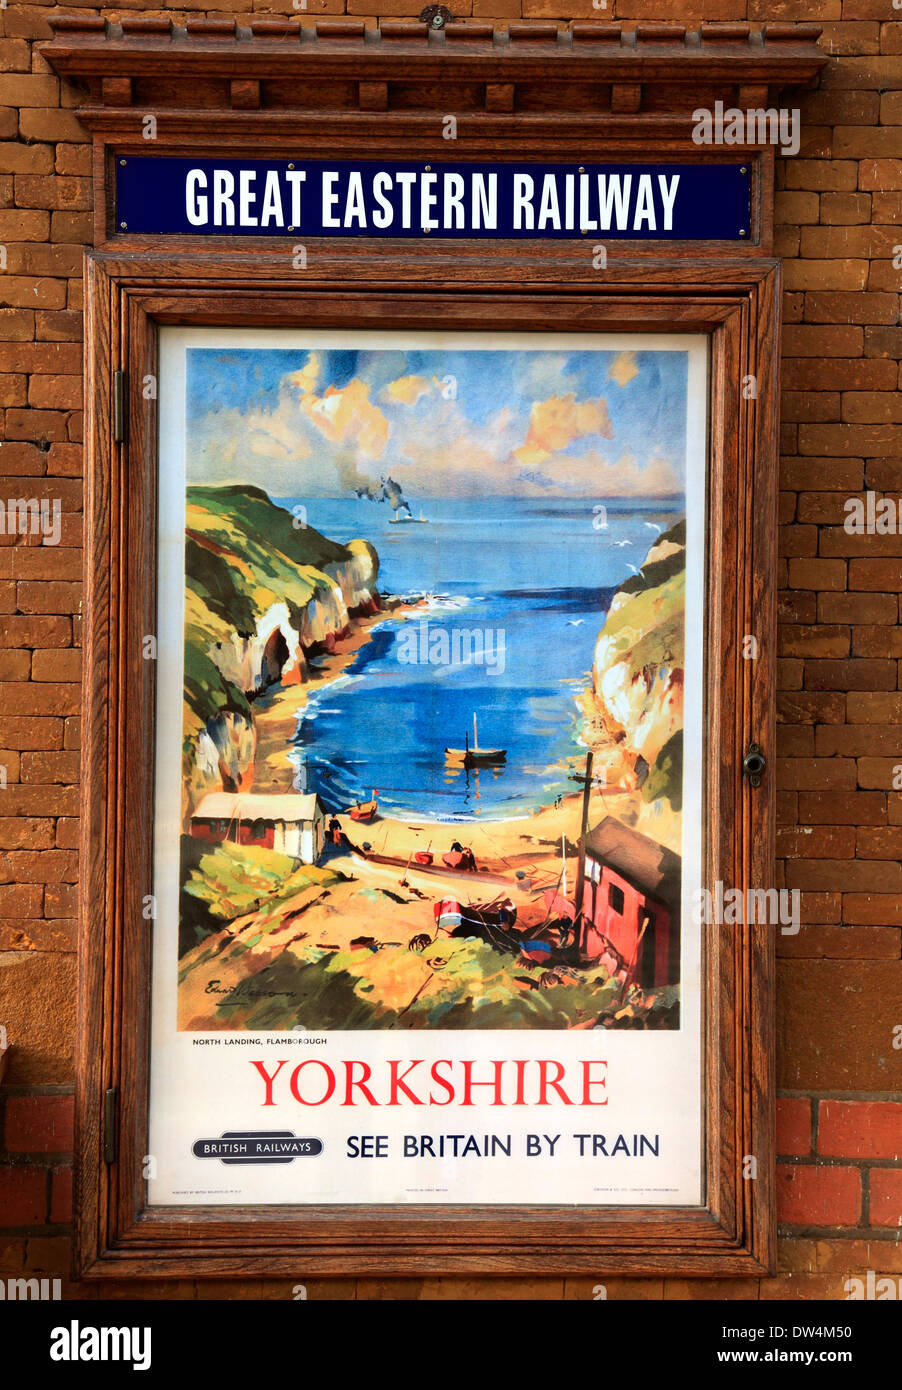 British Railway Poster Stockfotos & British Railway Poster Bilder ...